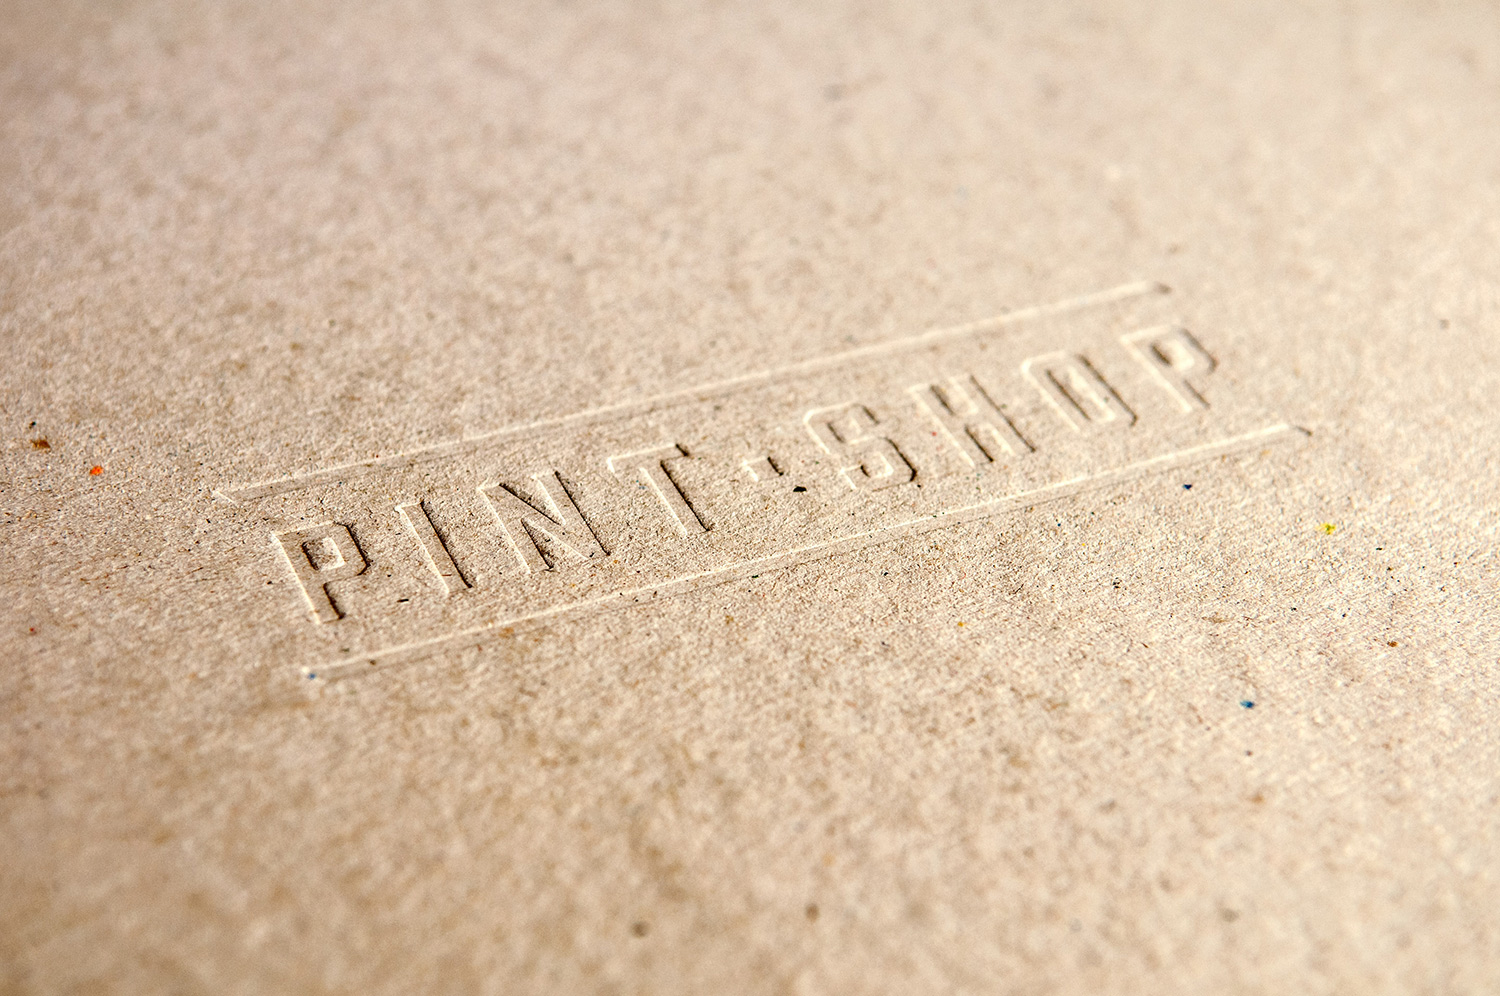 Close-up showing the Pint Shop logo debossed into brown recycled paper, designed by SAINT Design.